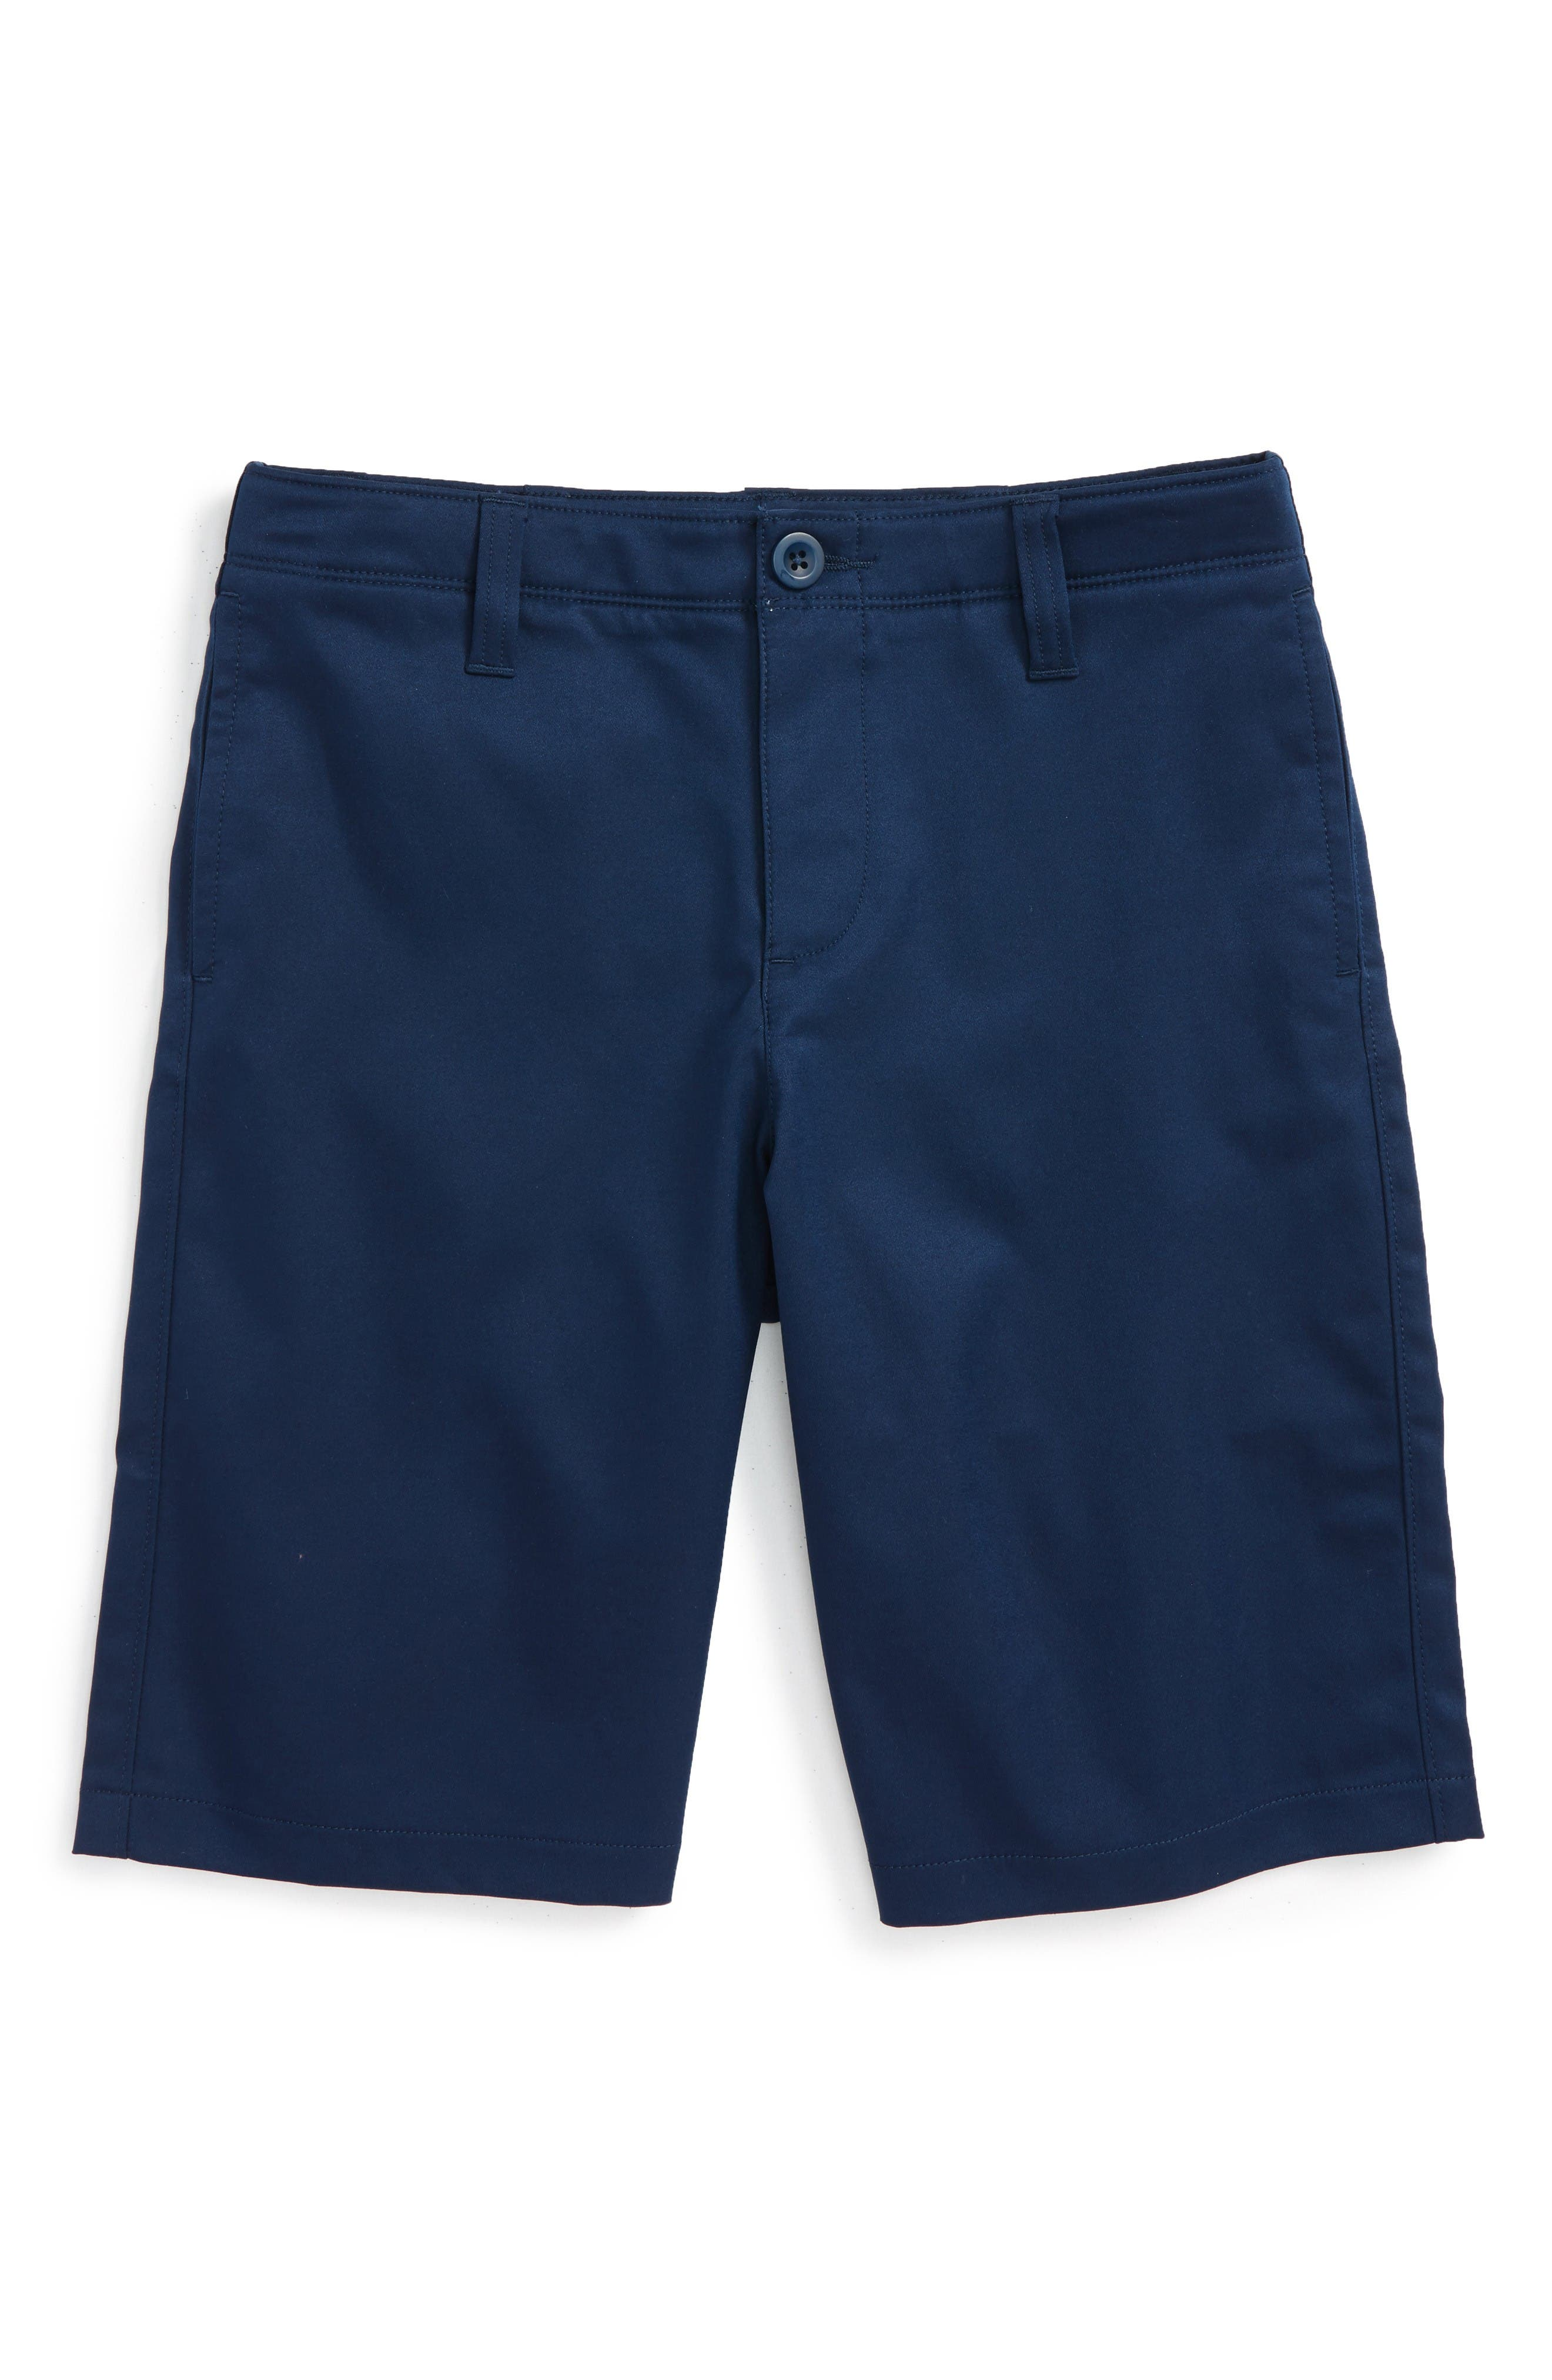 Match Play Shorts,                         Main,                         color, Academy/ Steel